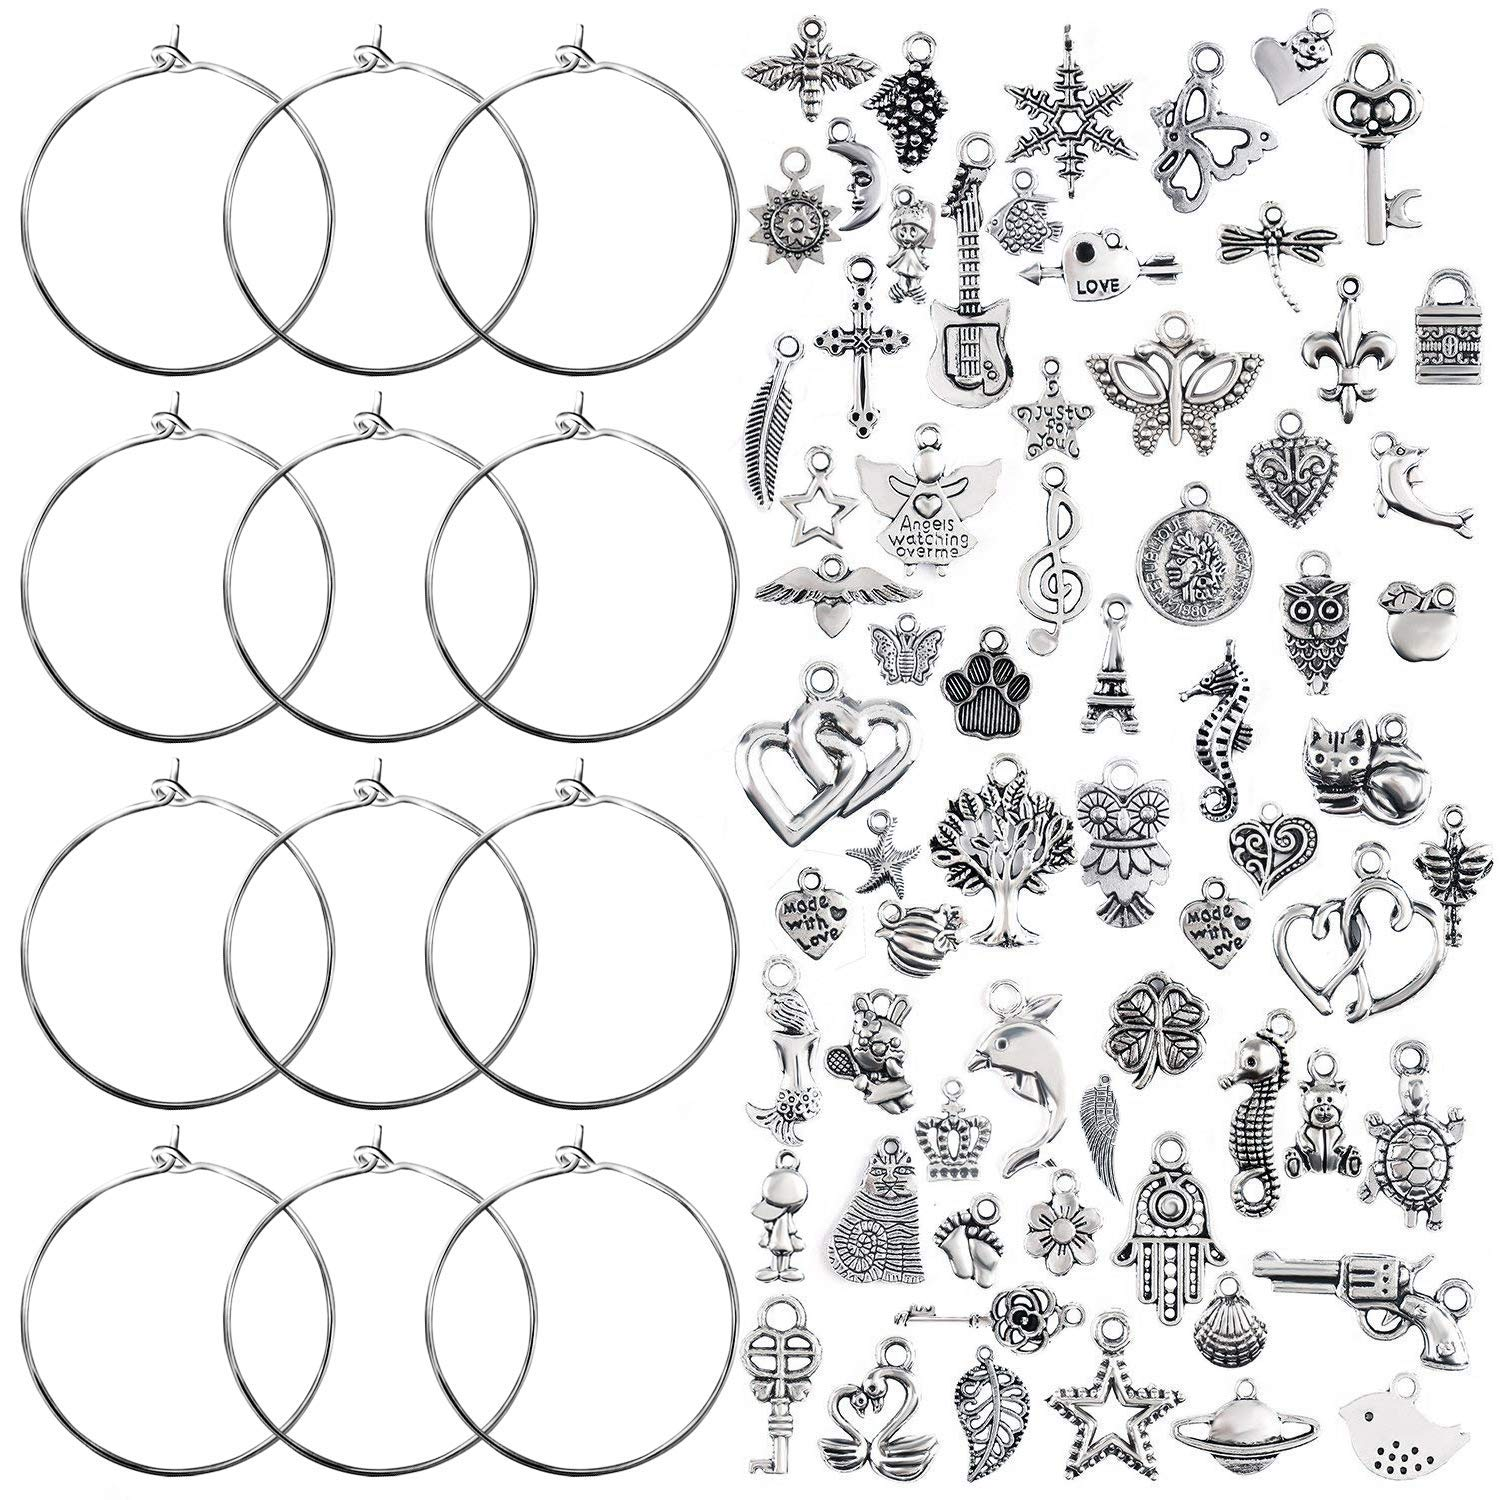 Homgaty 100 Pcs Stainless Steel Wine Glass Charm Rings Earring Hoops Wedding Party Decorations